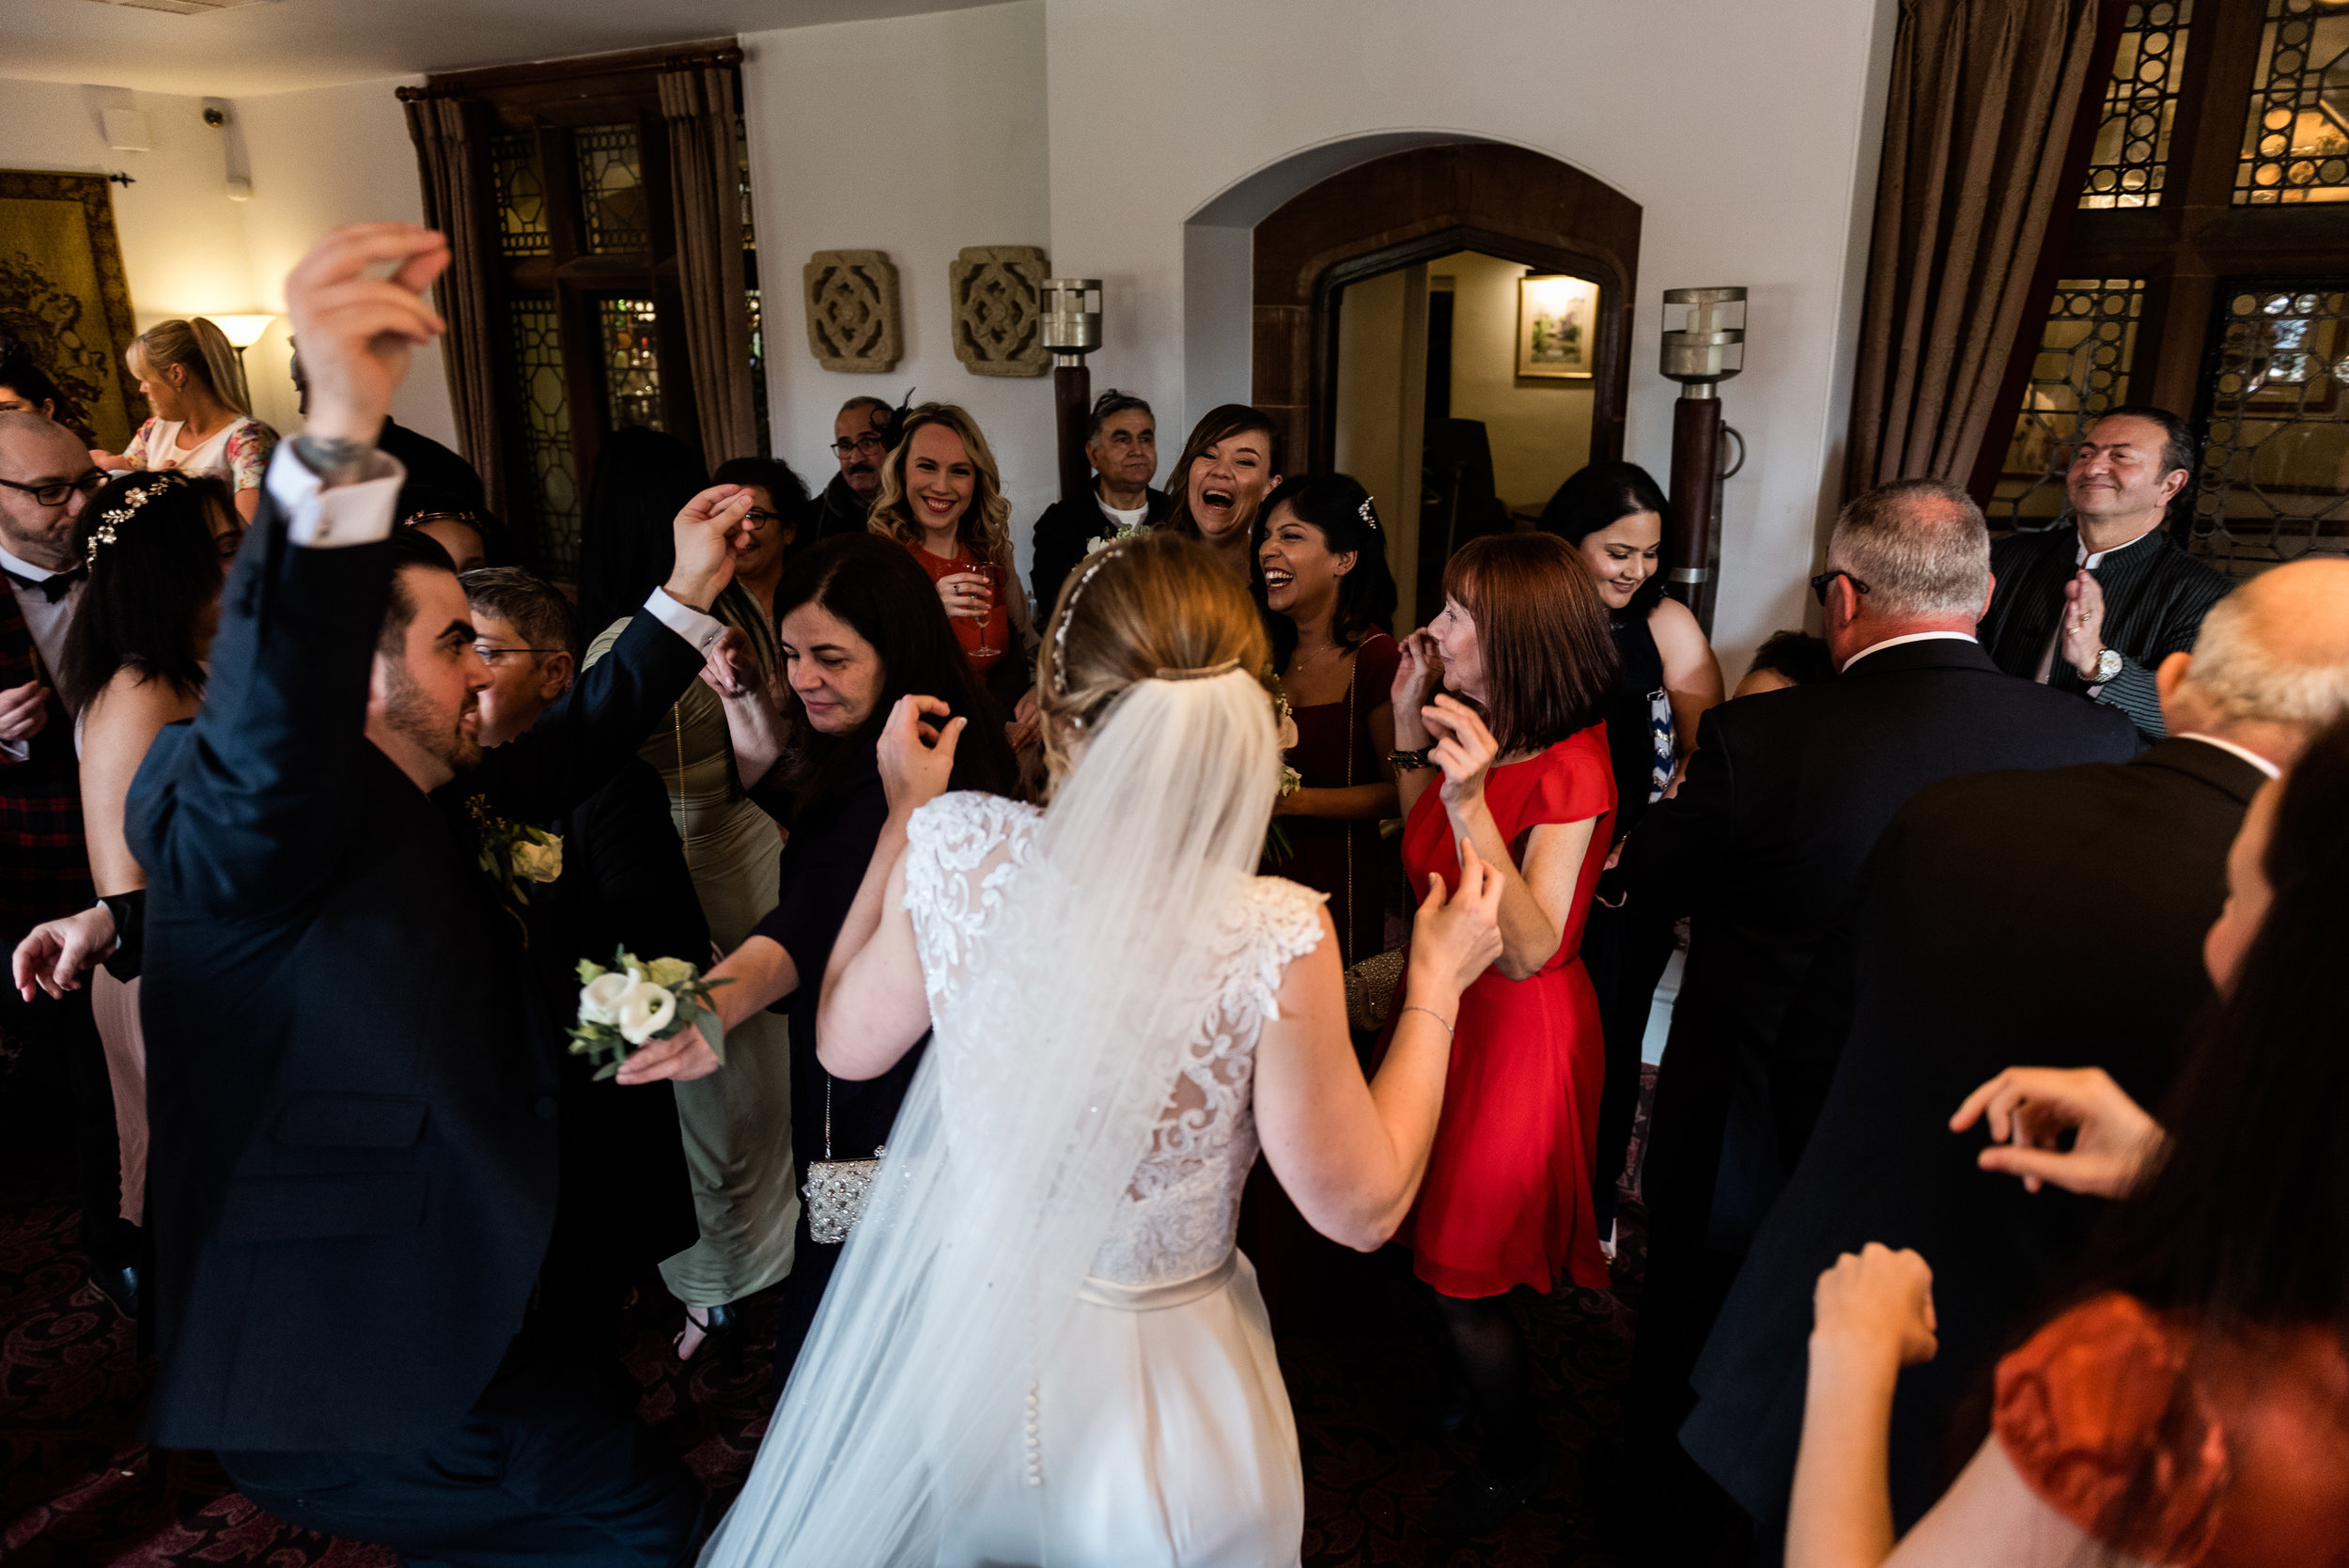 Birmingham Documentary Wedding Photography at New Hall, Sutton Coldfield Turkish Red Candid Reportage - Jenny Harper-46.jpg